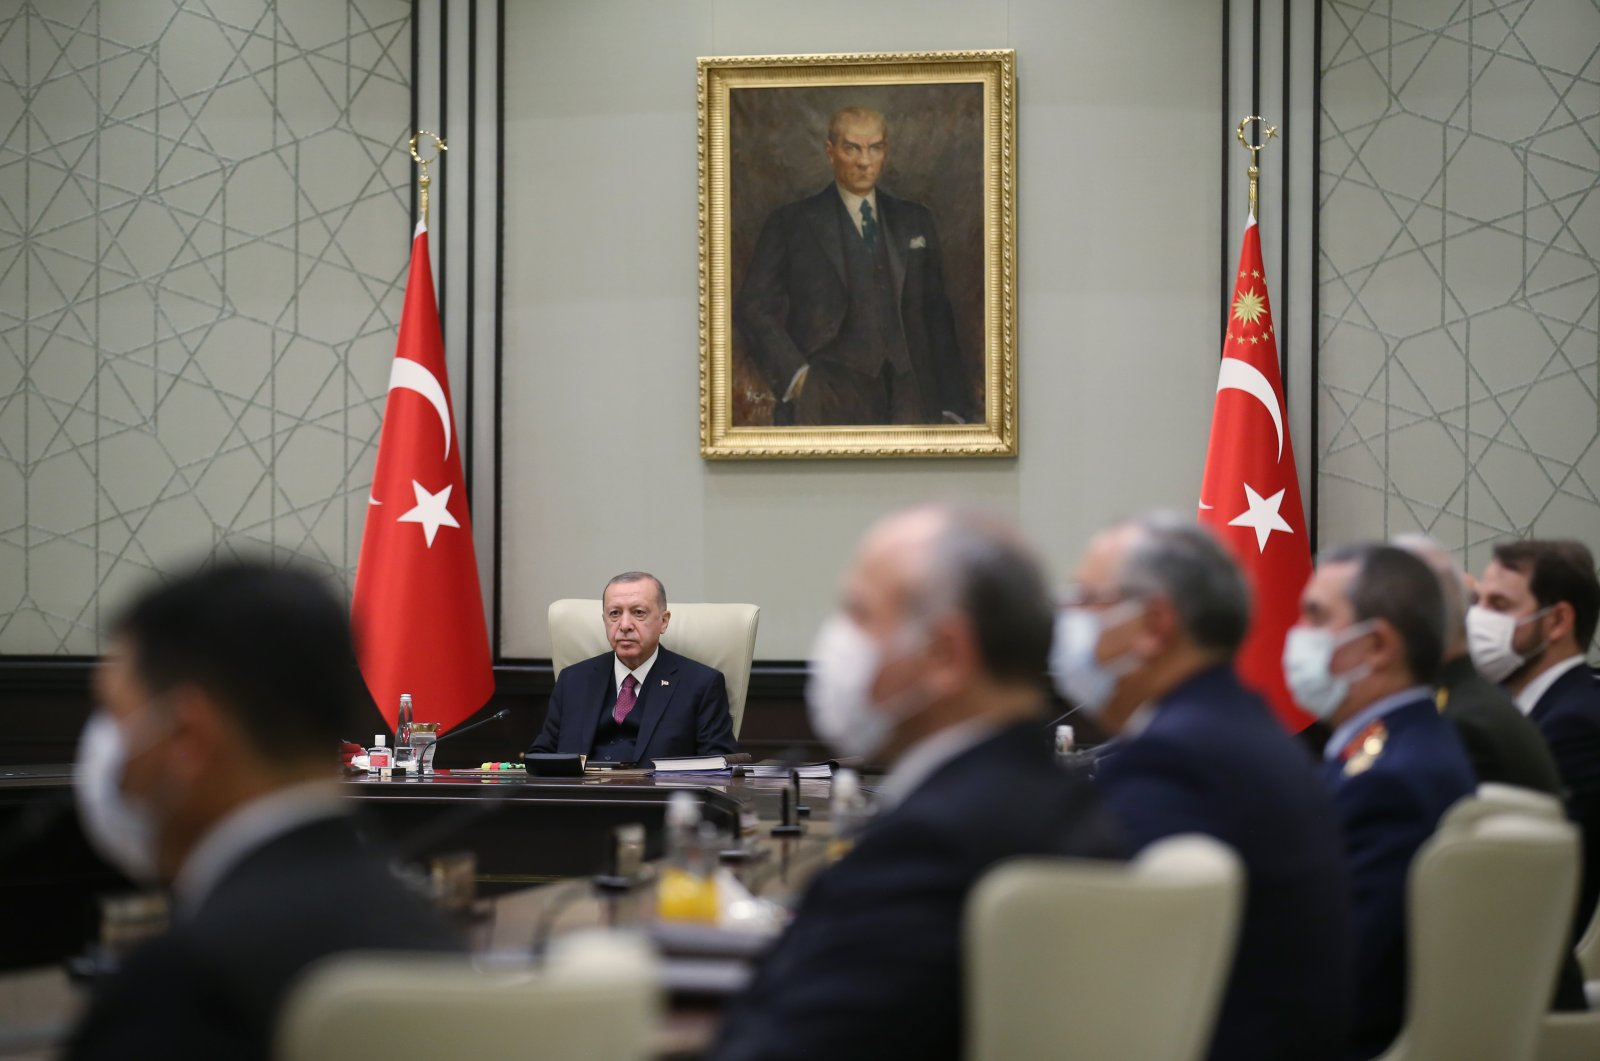 President Recep Tayyip Erdoğan presides over the National Security Council (MGK) meeting at the Presidential Complex, Ankara, Turkey, Sept. 24, 2020 (AA Photo)